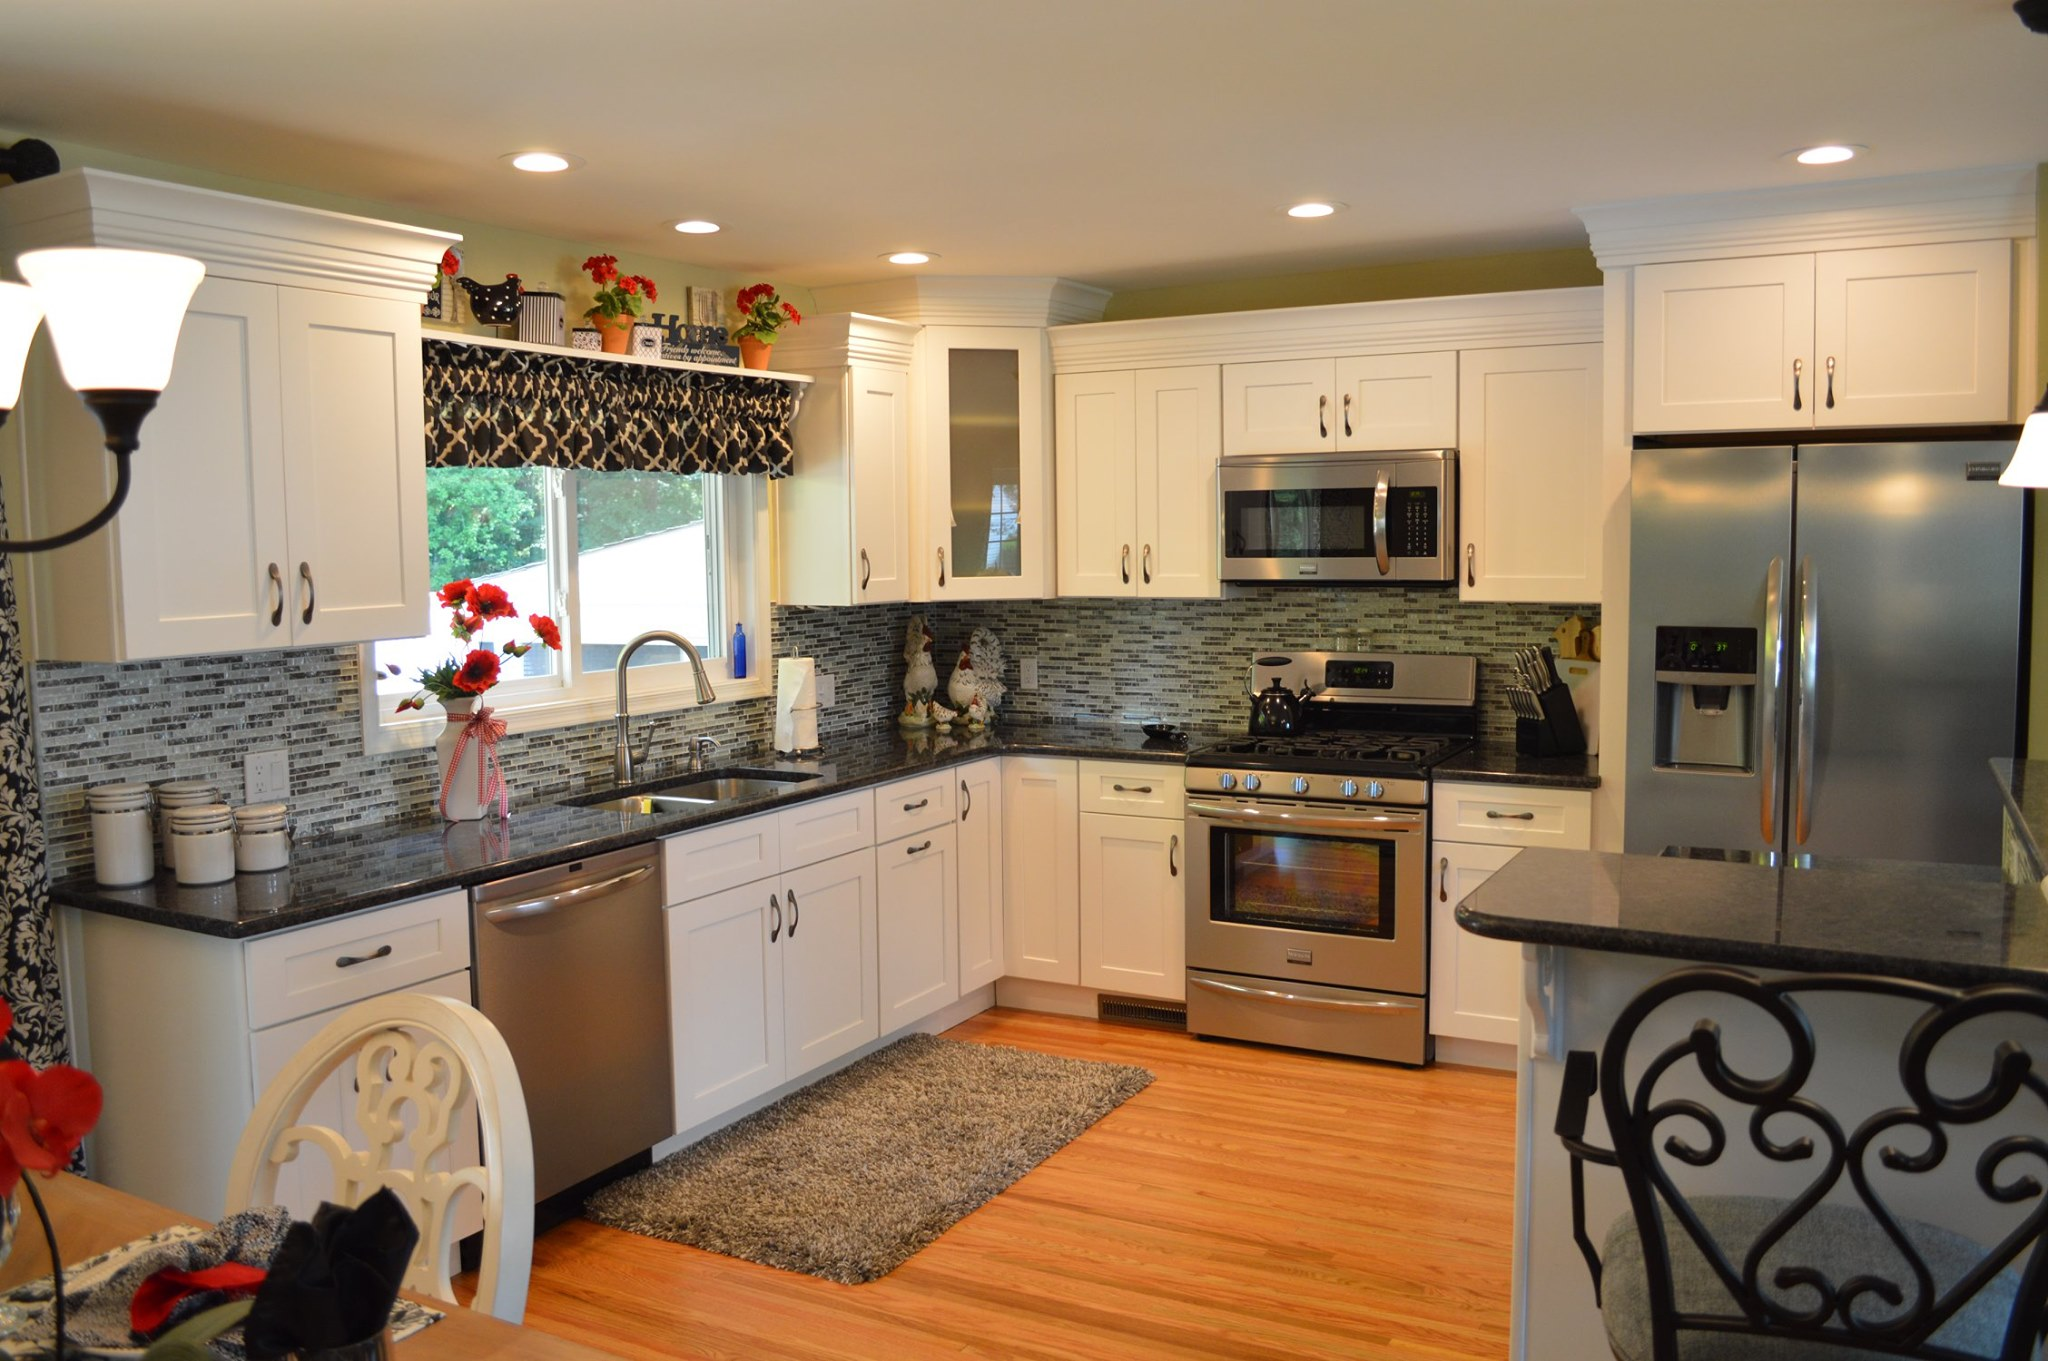 MAW Construction offers kitchen remodeling services